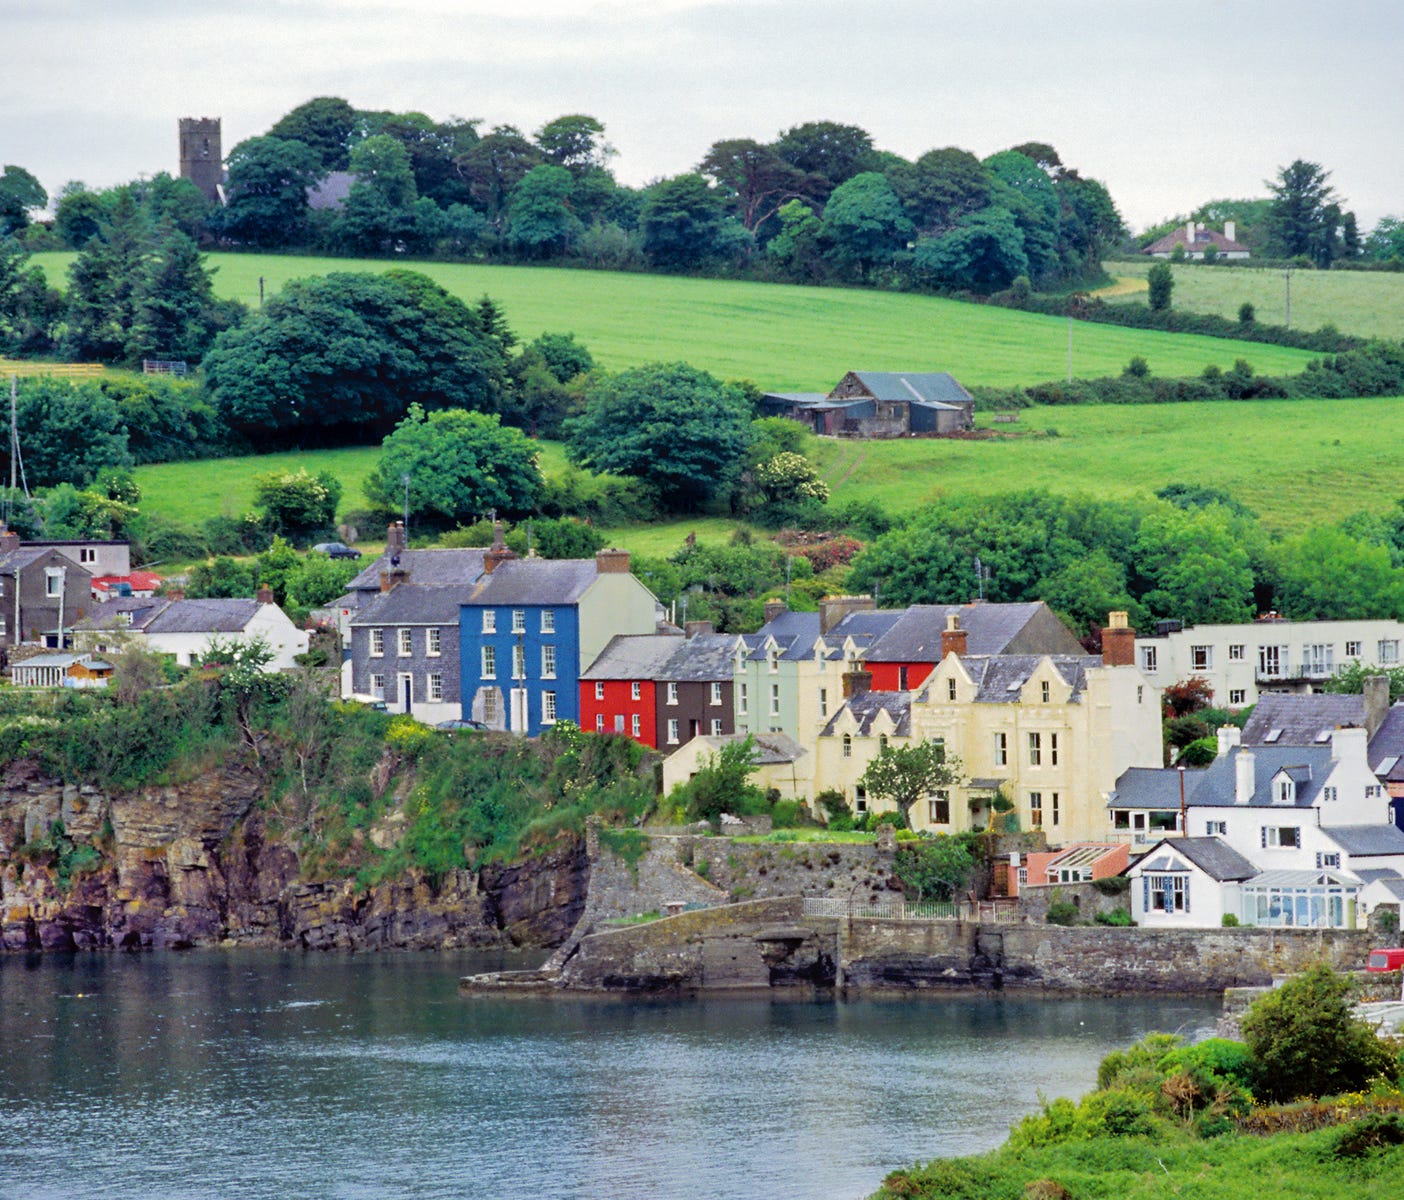 Ireland's legendary green countryside is the backdrop for the coastal town of Kinsale, a winner in the annual